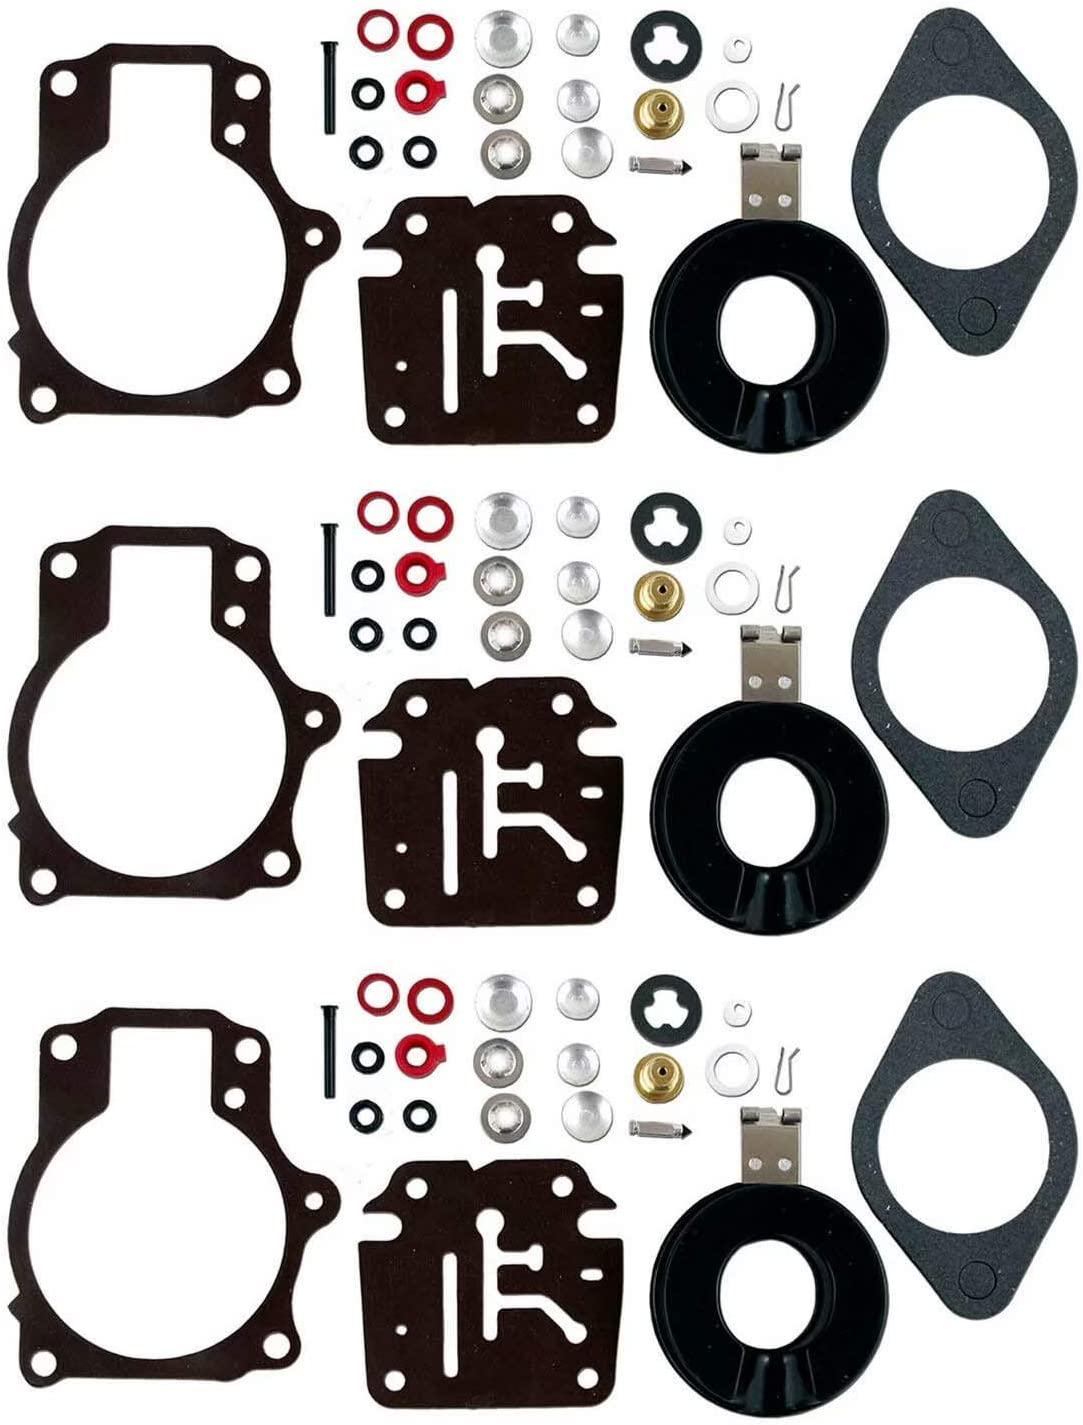 Carb Repair Kit Fits Johnson Evinrude Carburetor 18 20 25 28 30 40 45 48 50 60 70 75 hp Replaces 18-7222 392061, 396701, 398729